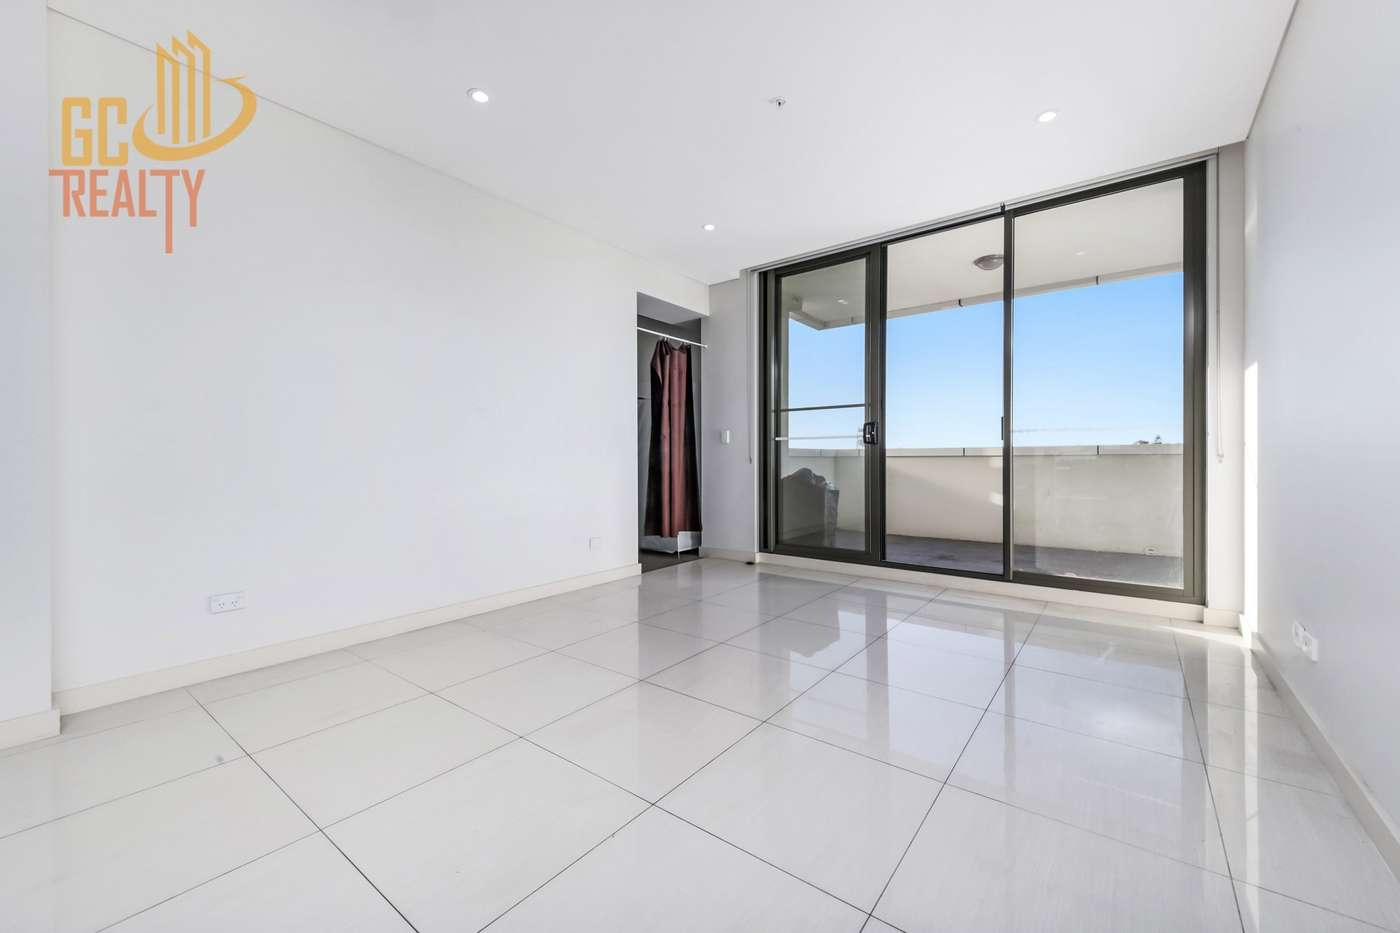 Main view of Homely apartment listing, 650/2 Nipper Street, Homebush, NSW 2140